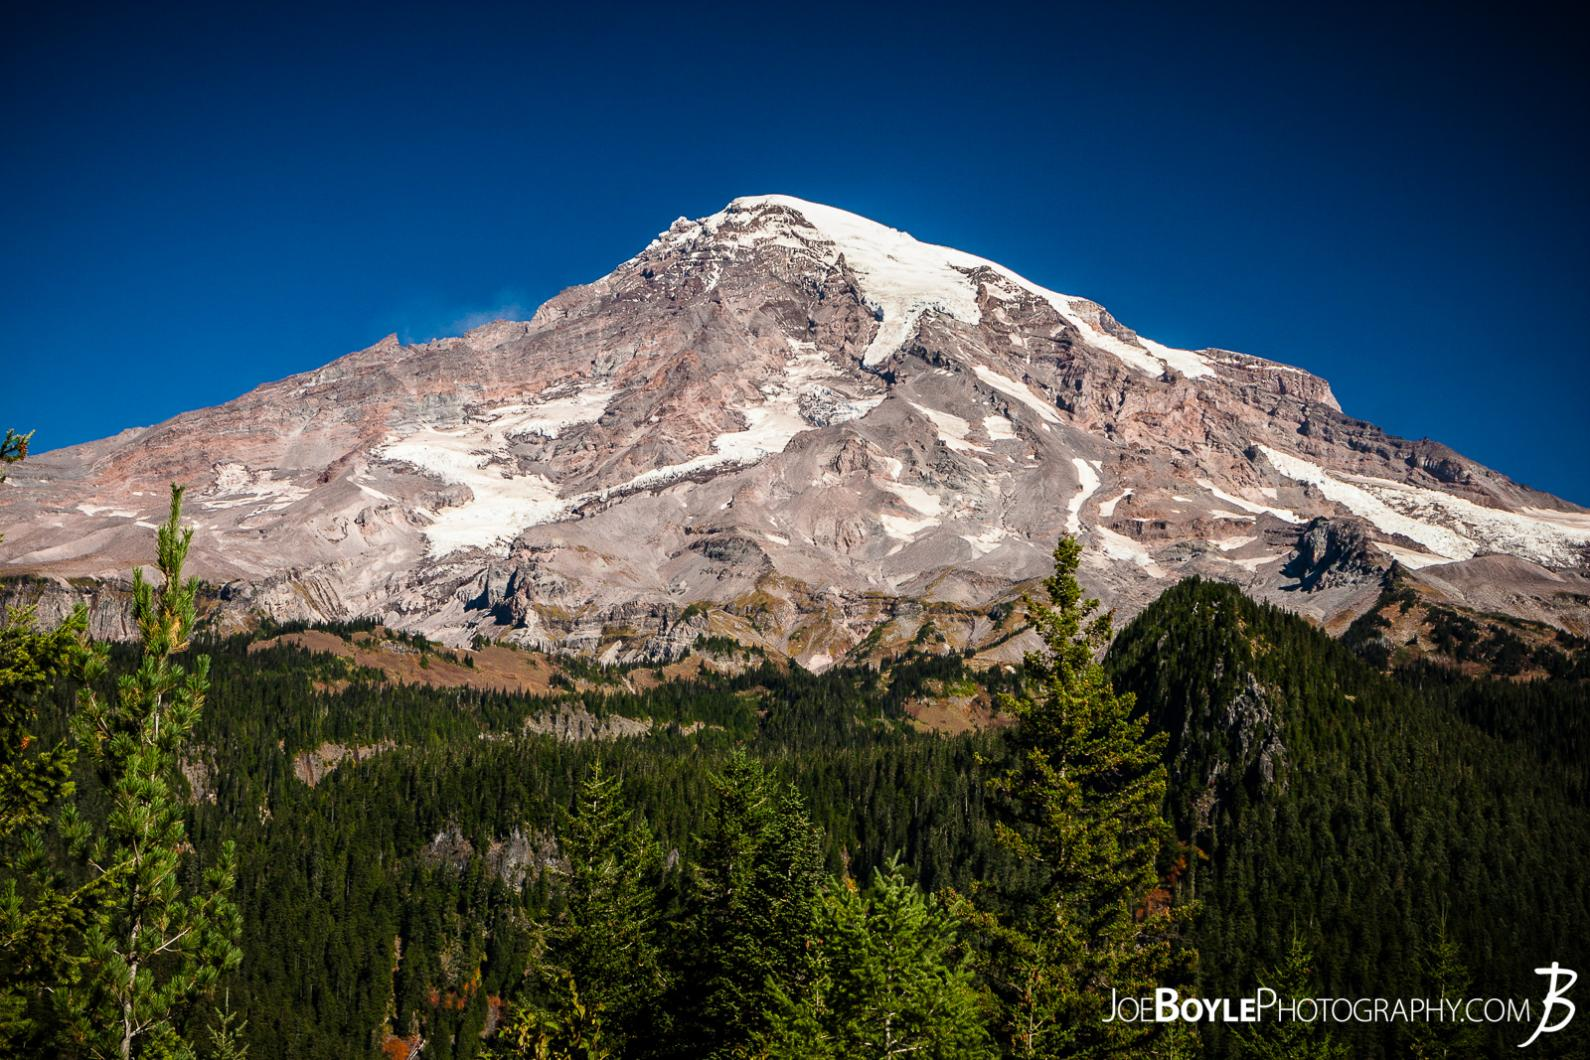 mount-rainier-from-a-roadside-vista